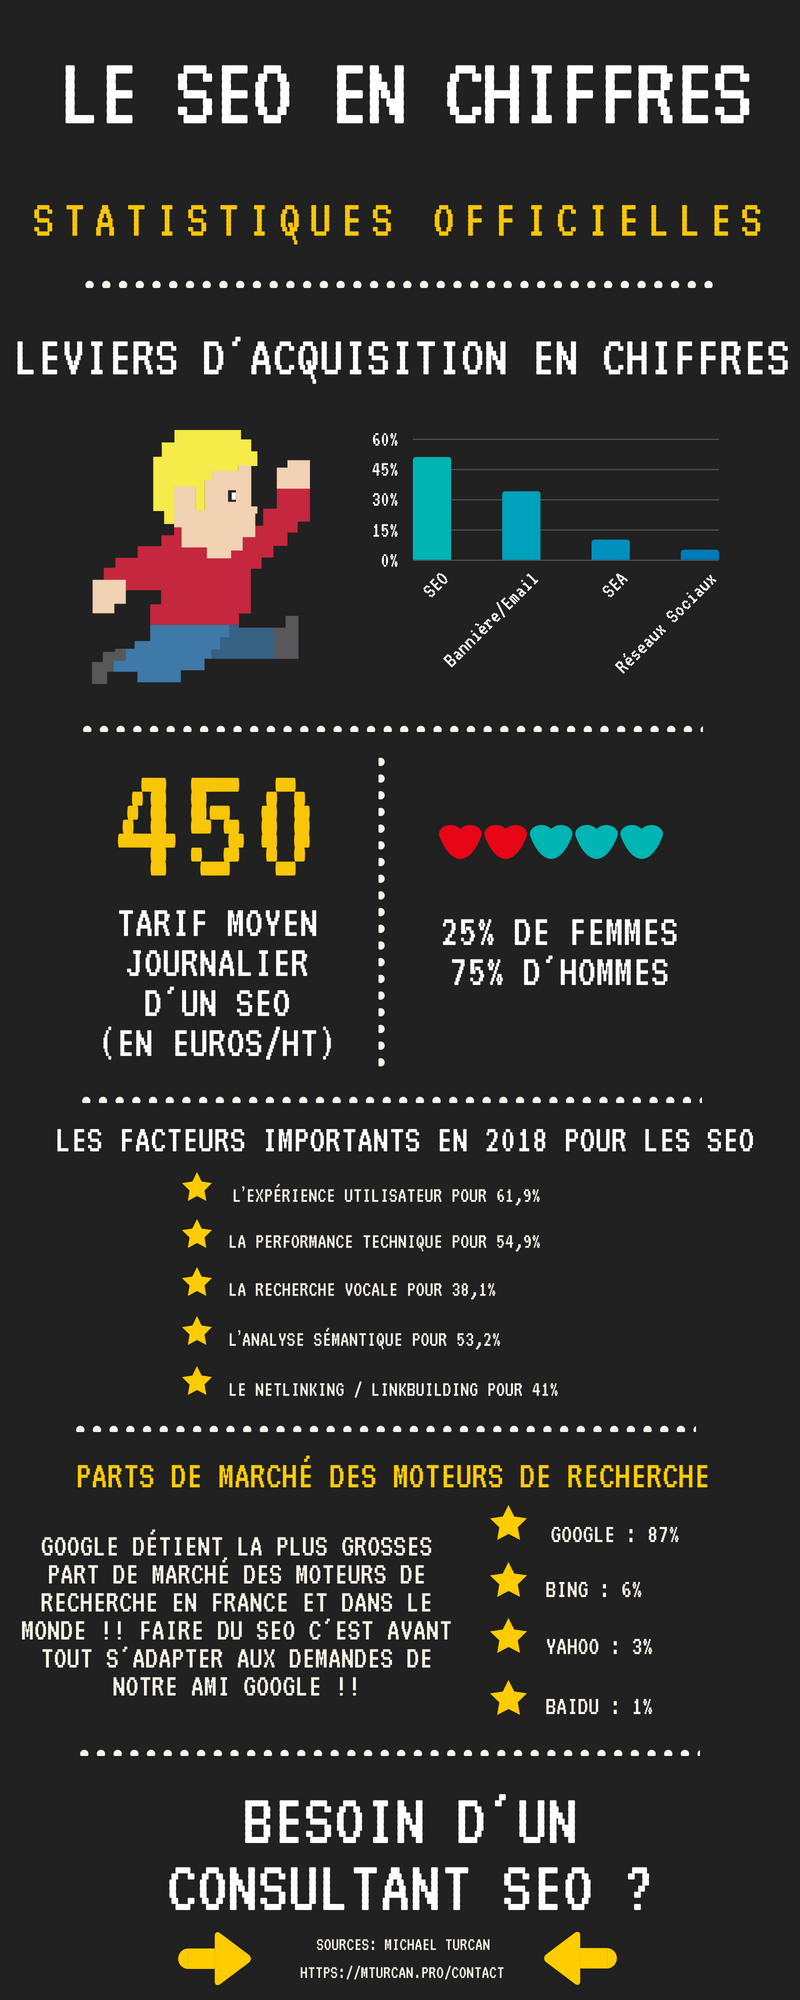 SEO 2018 CHIFFRES STATISTIQUES